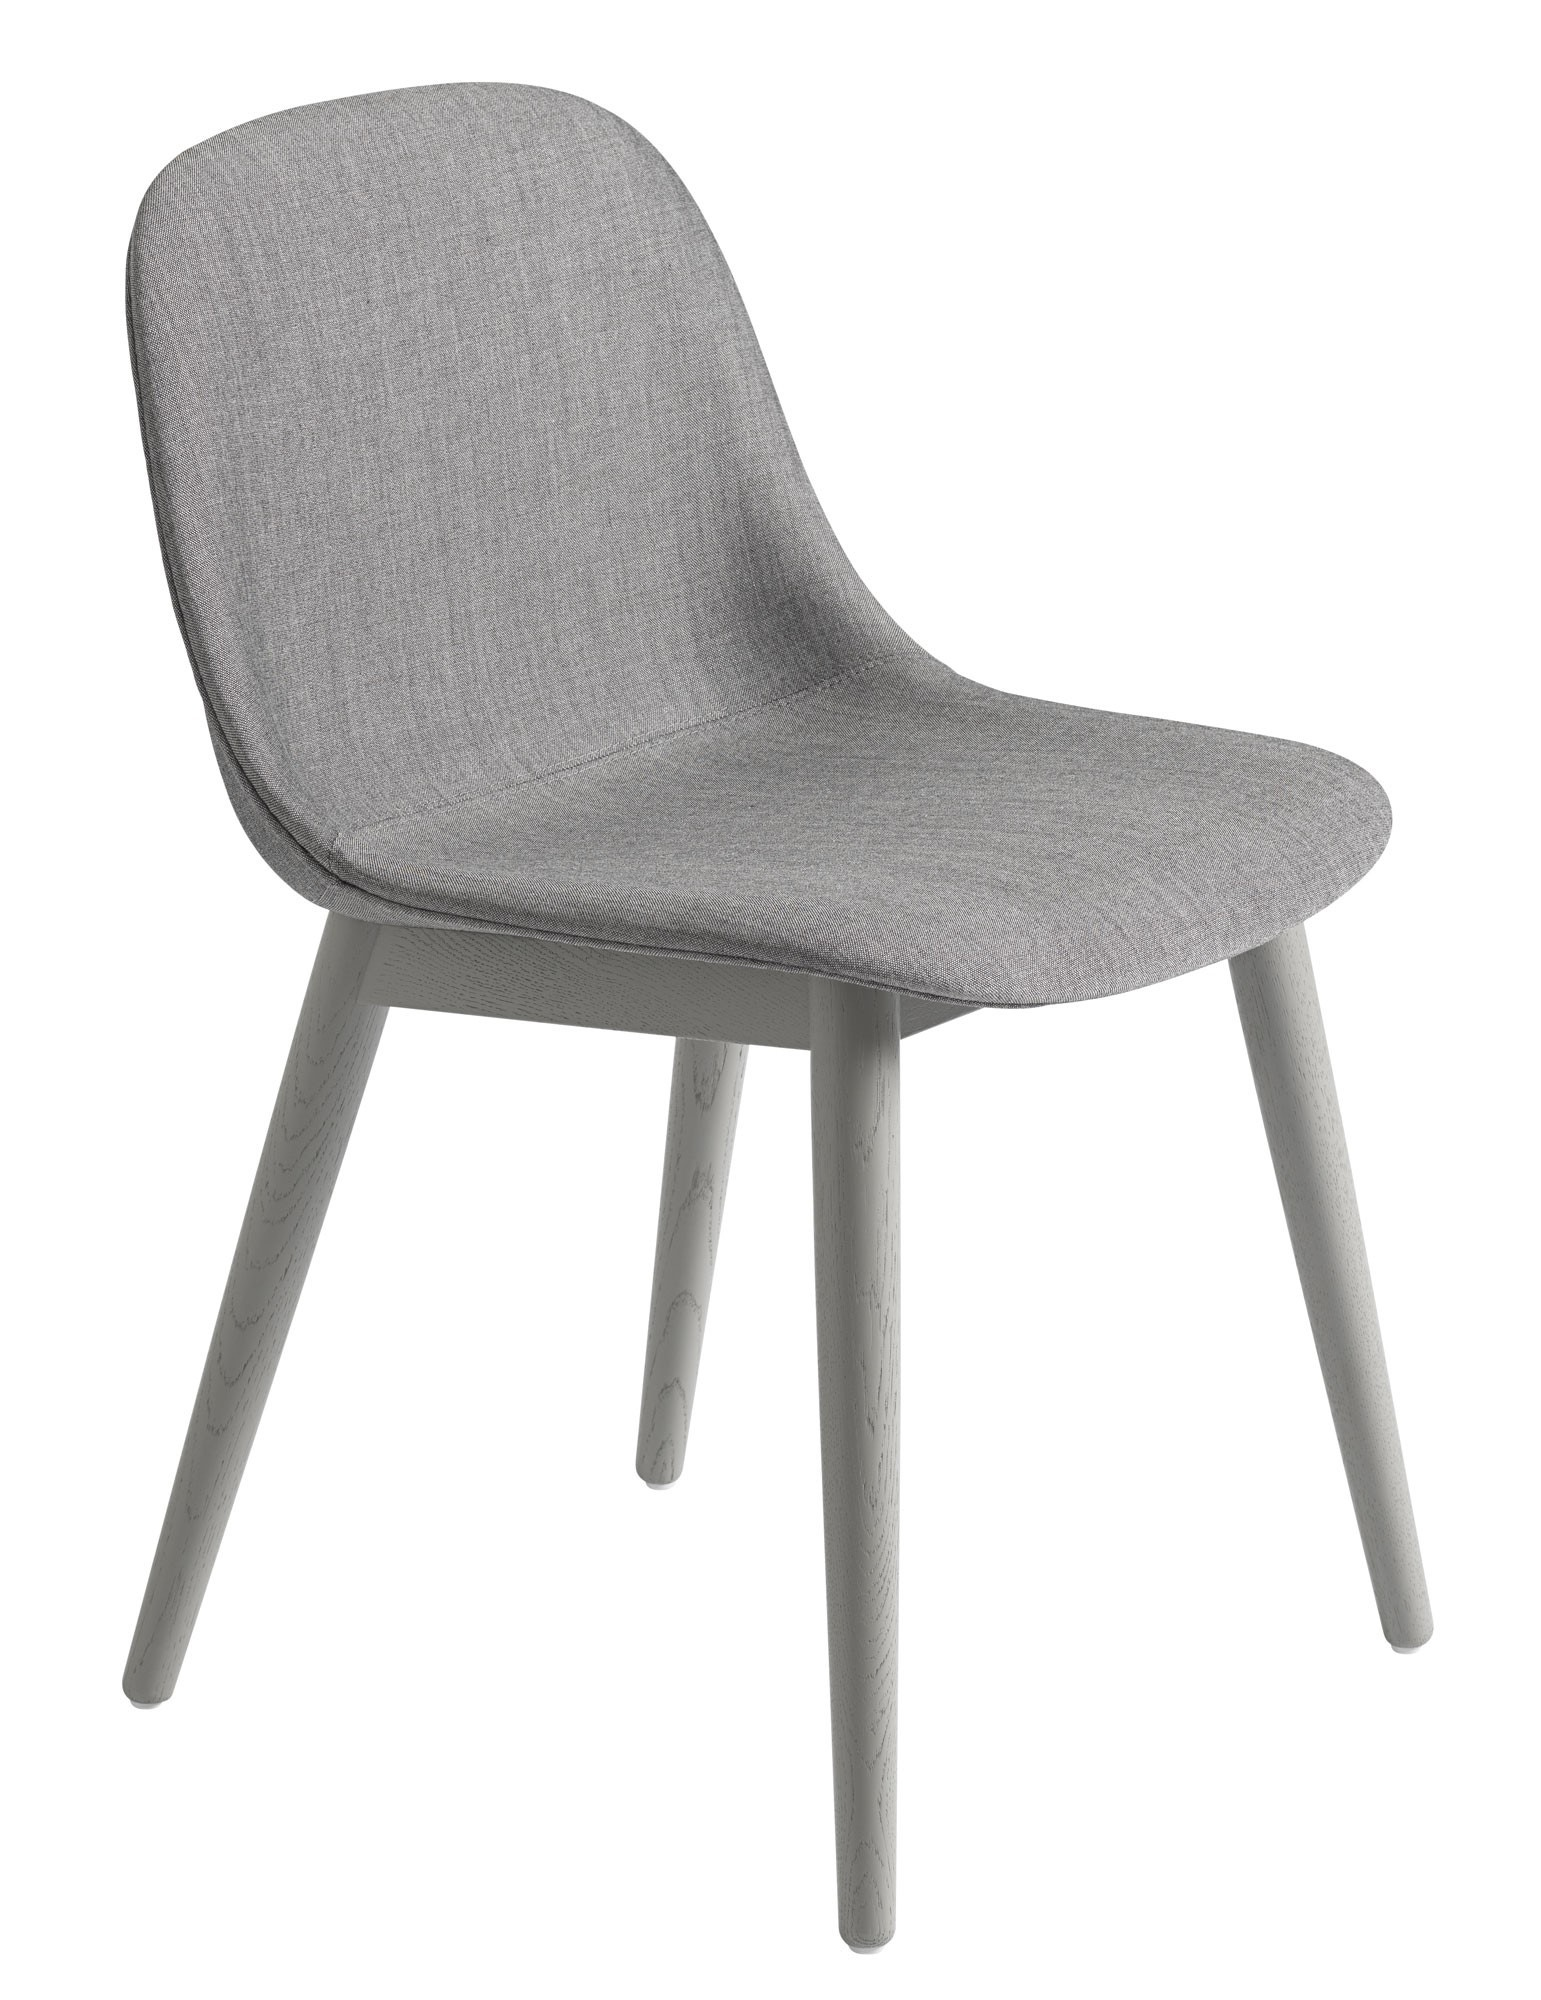 Wood Base Chairs ~ Muuto wood base upholstered fiber side chair gr shop canada